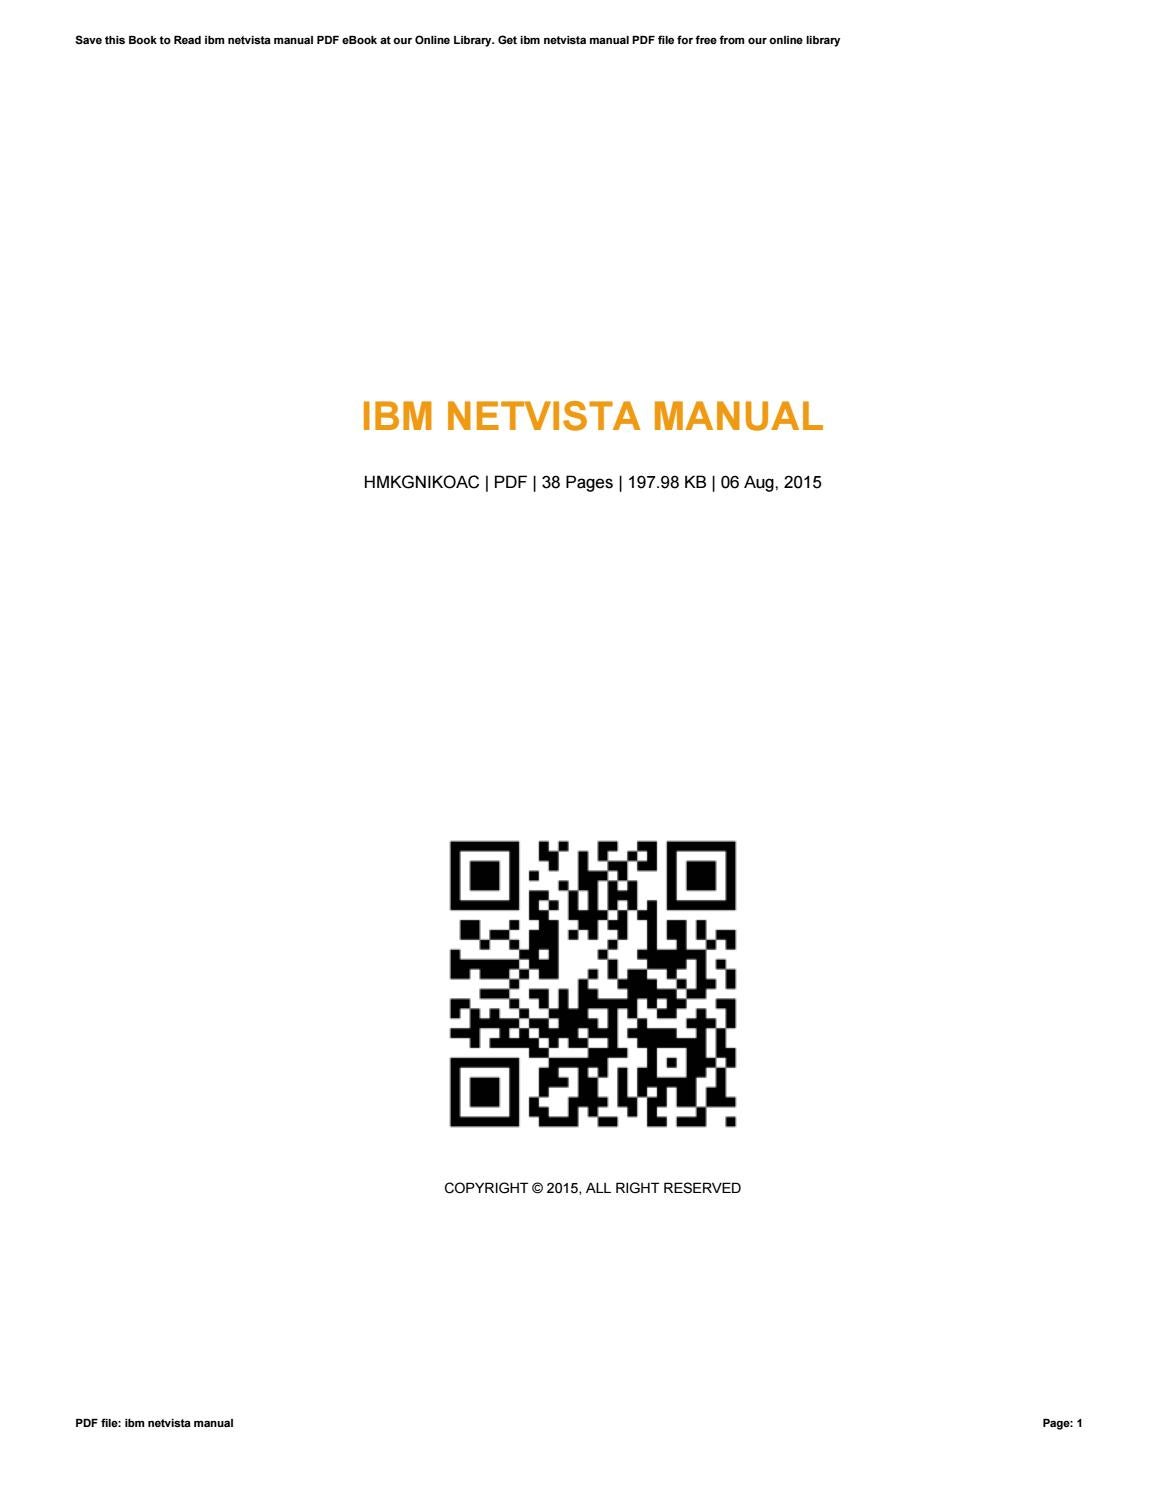 IBM NETVISTA MANUAL DRIVER DOWNLOAD